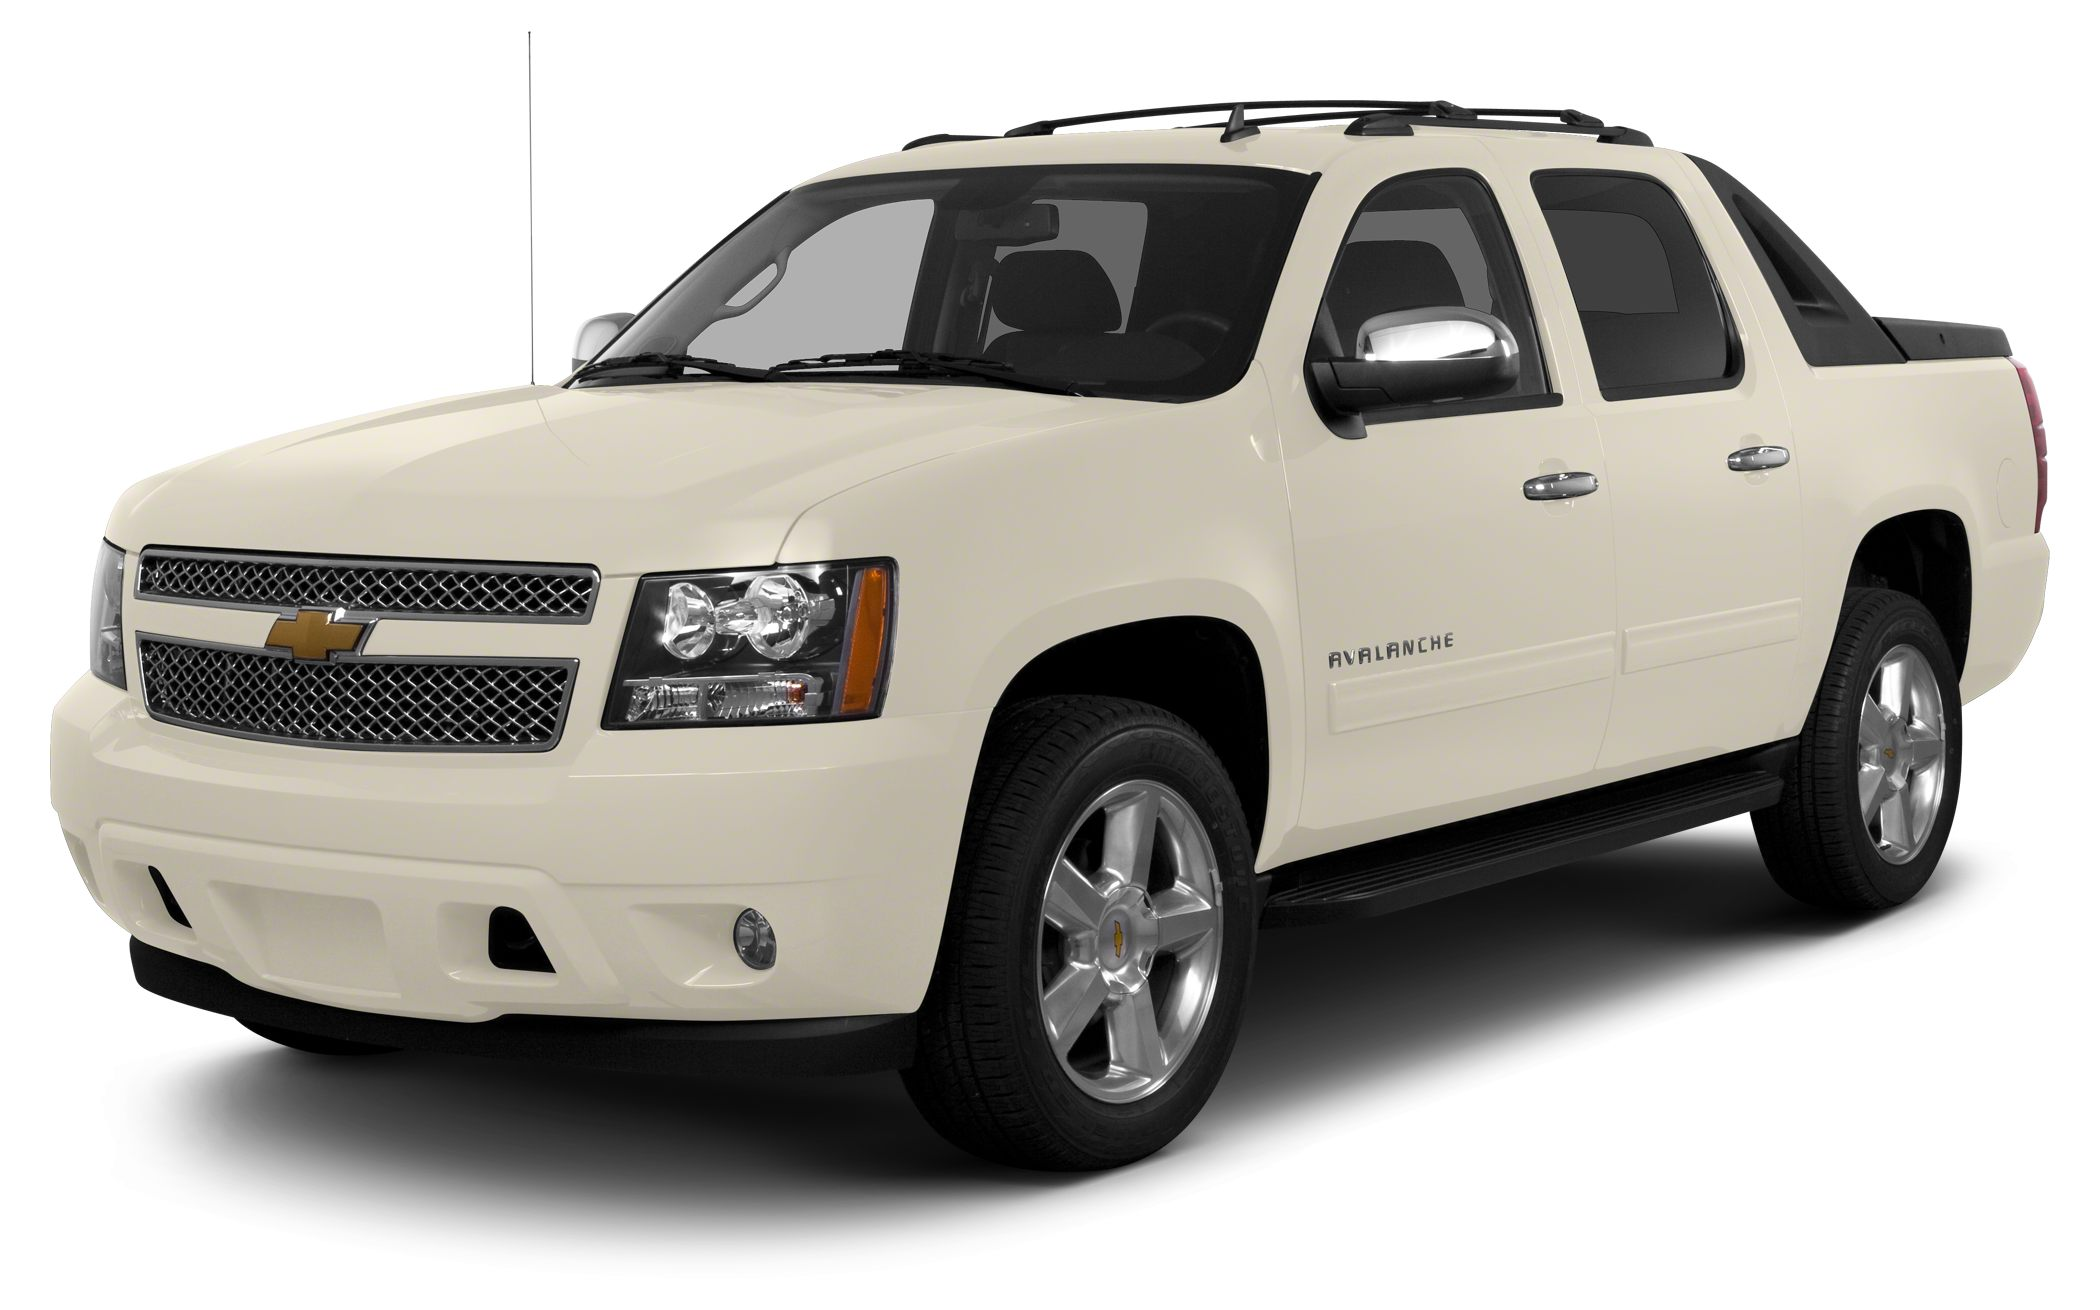 2013 Chevrolet Avalanche LTZ 6-Speed Automatic 20 x 85 Polished Aluminum Wheels CLEAN AUTOCHECK